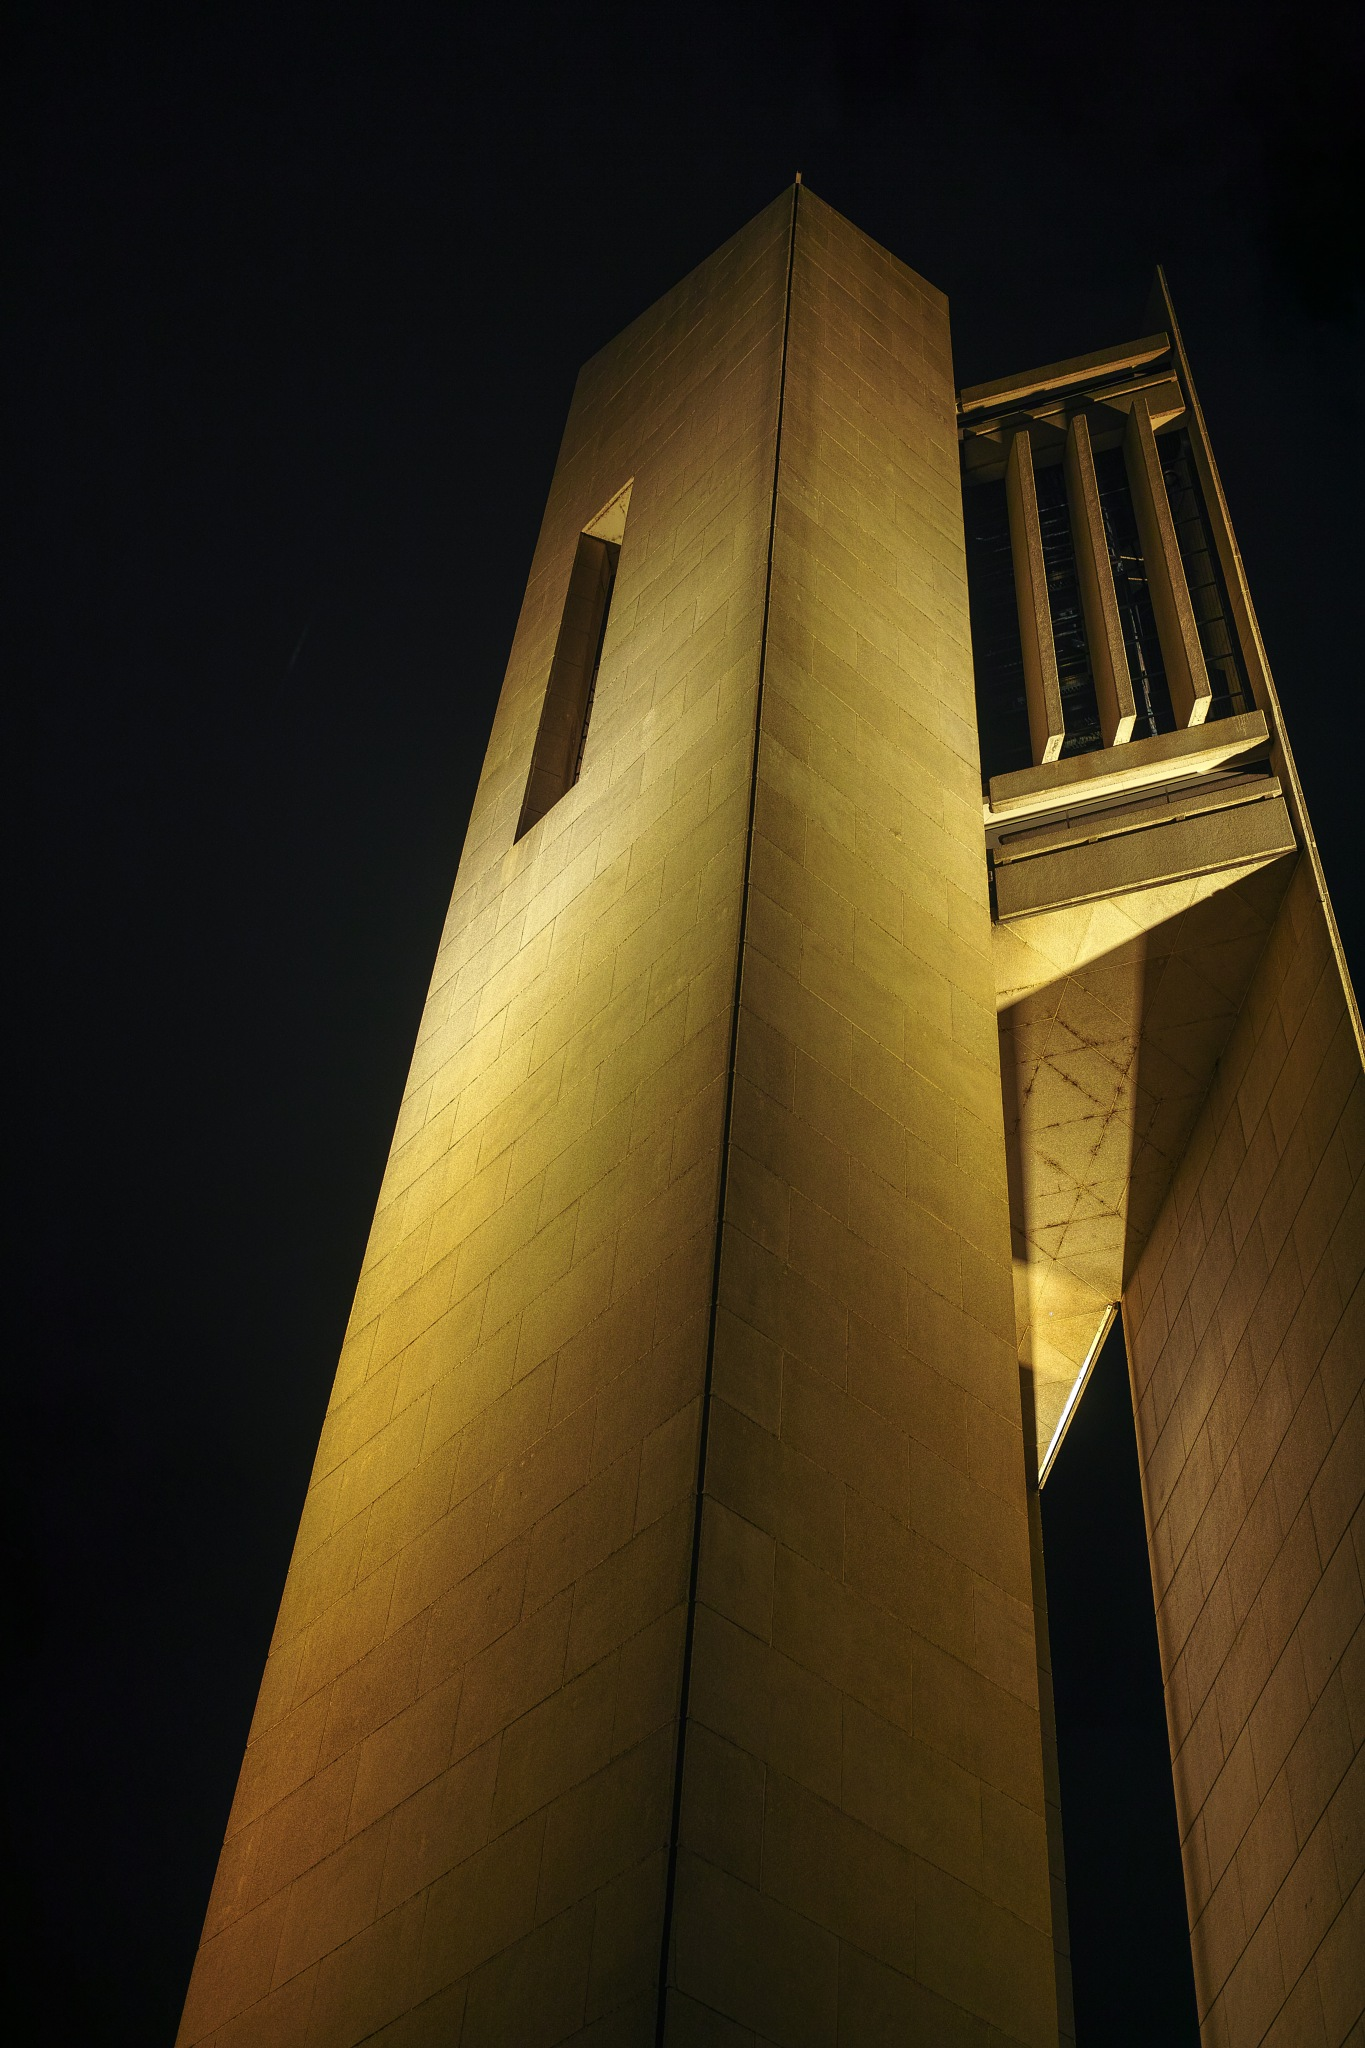 National Carillon by TonyG